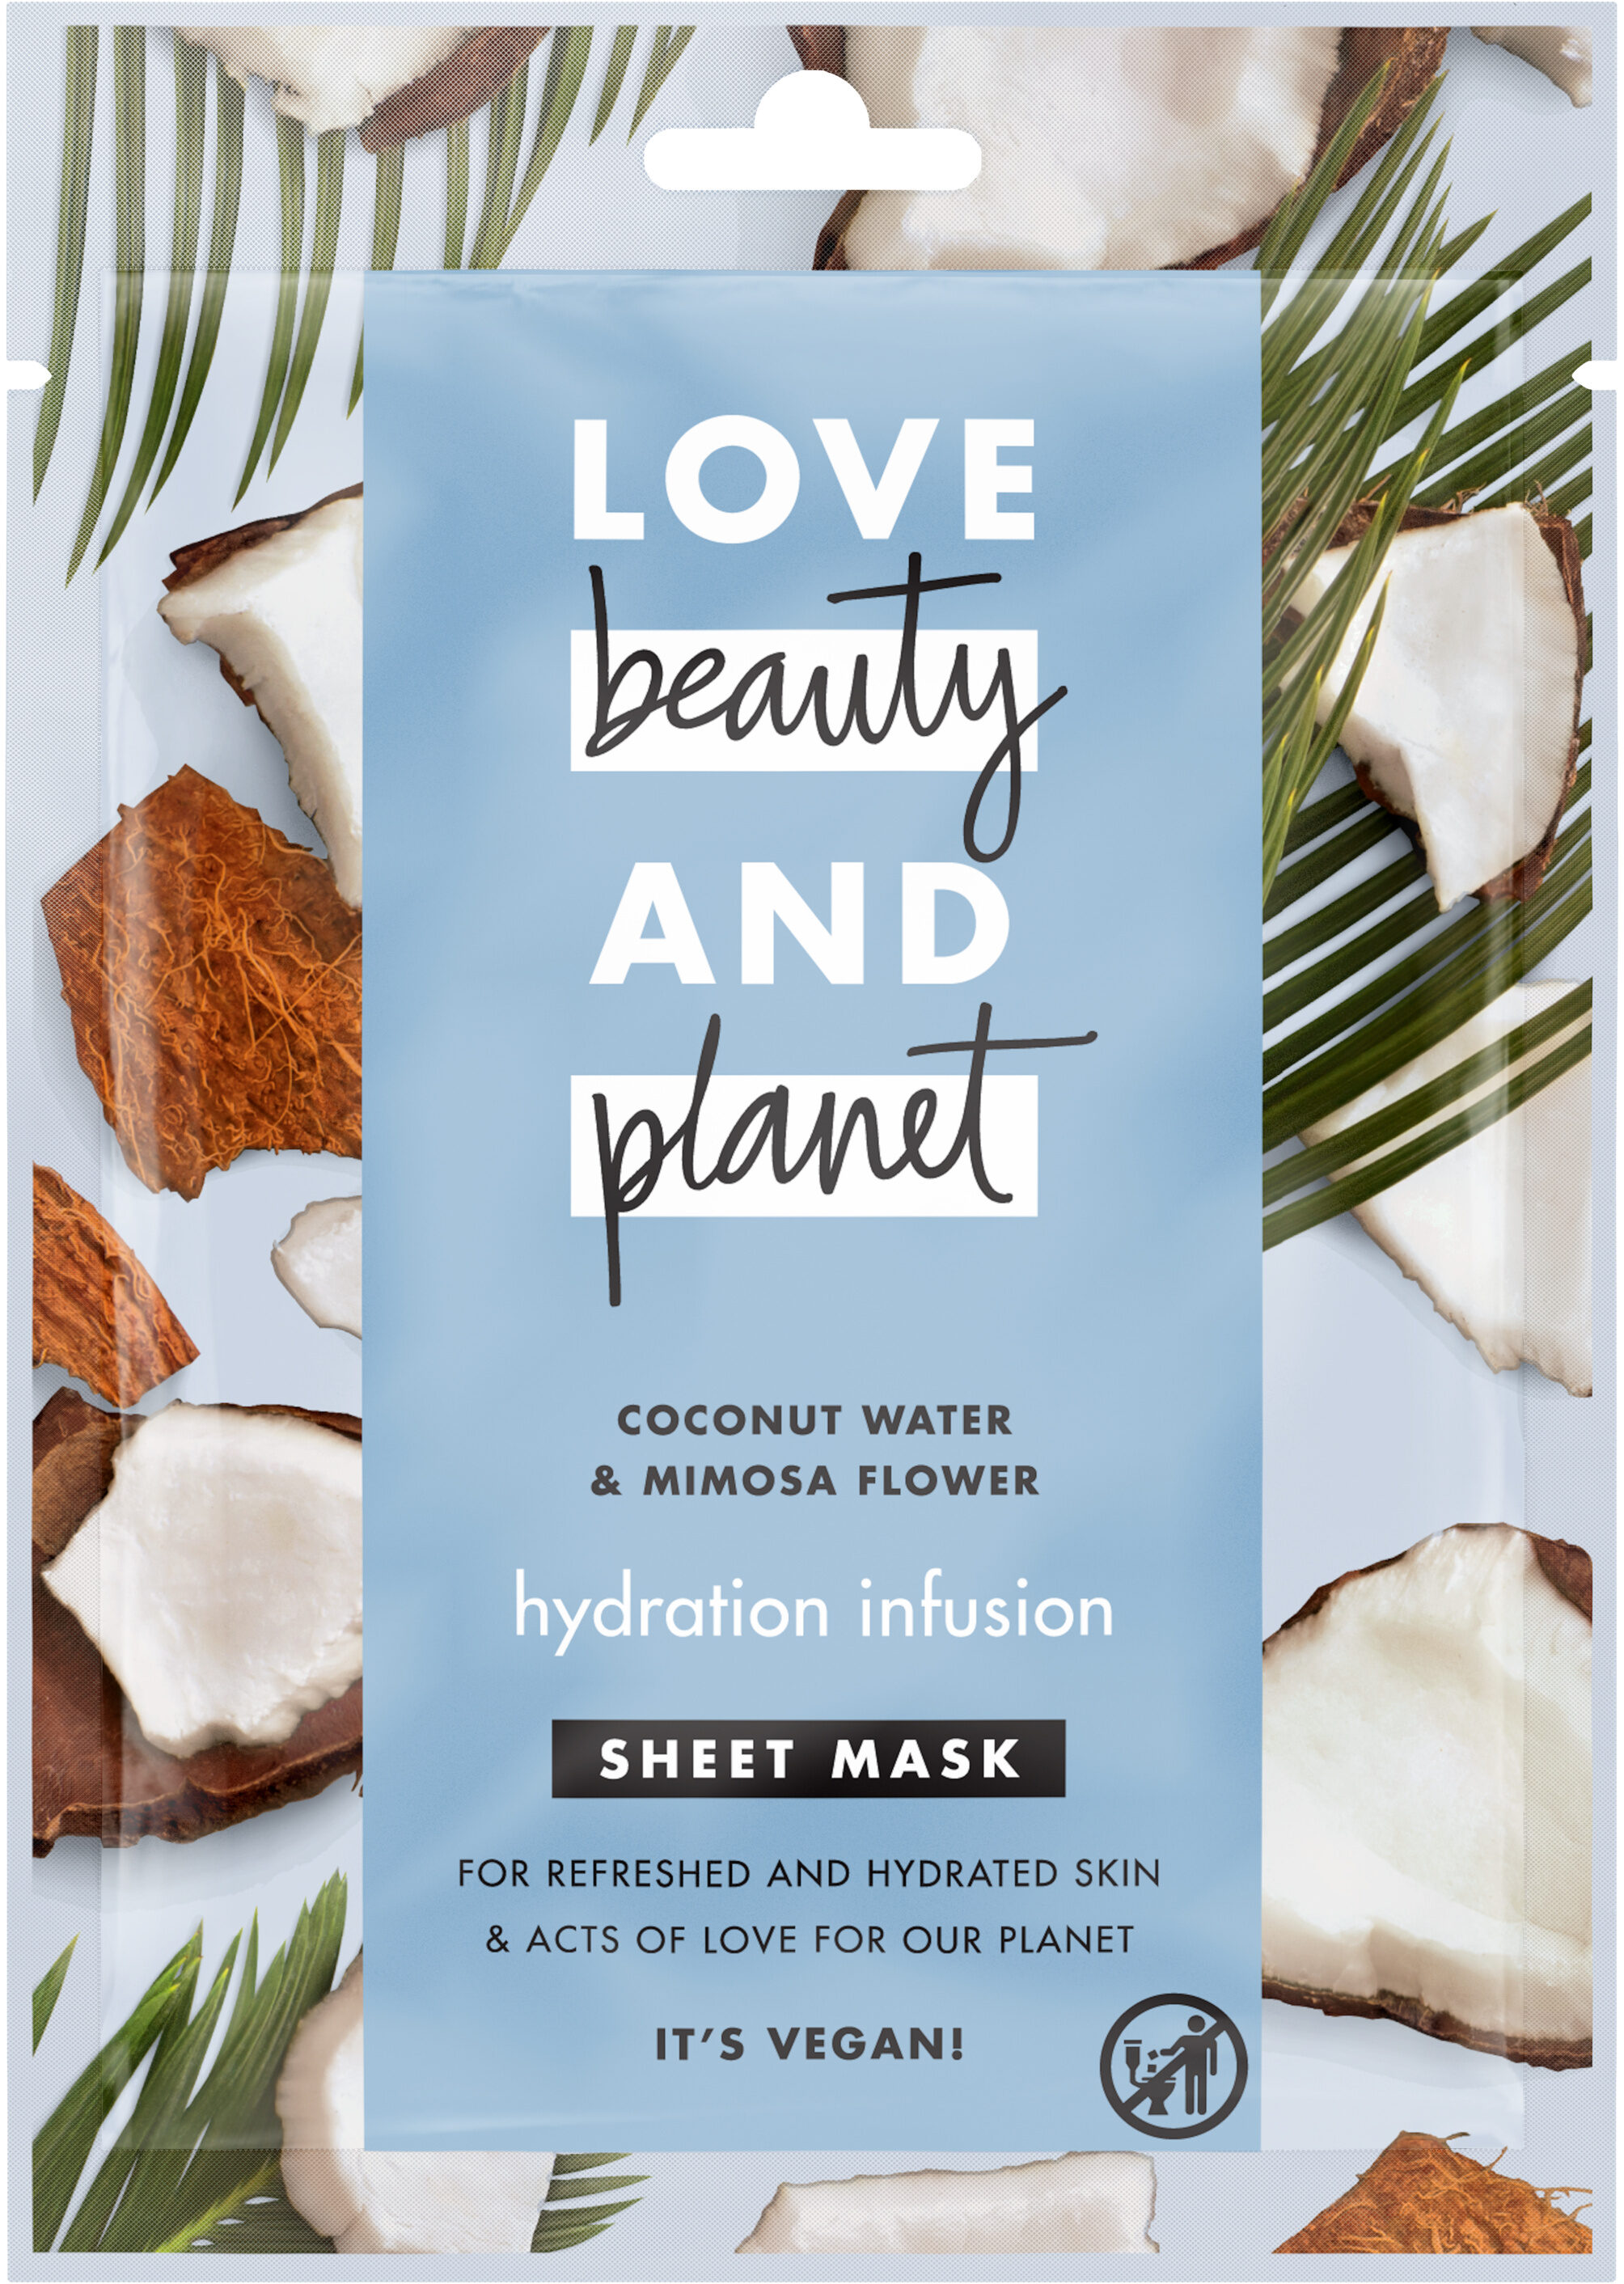 Love Beauty And Planet Masque tissu Infusion Hydratante x1 - Product - fr